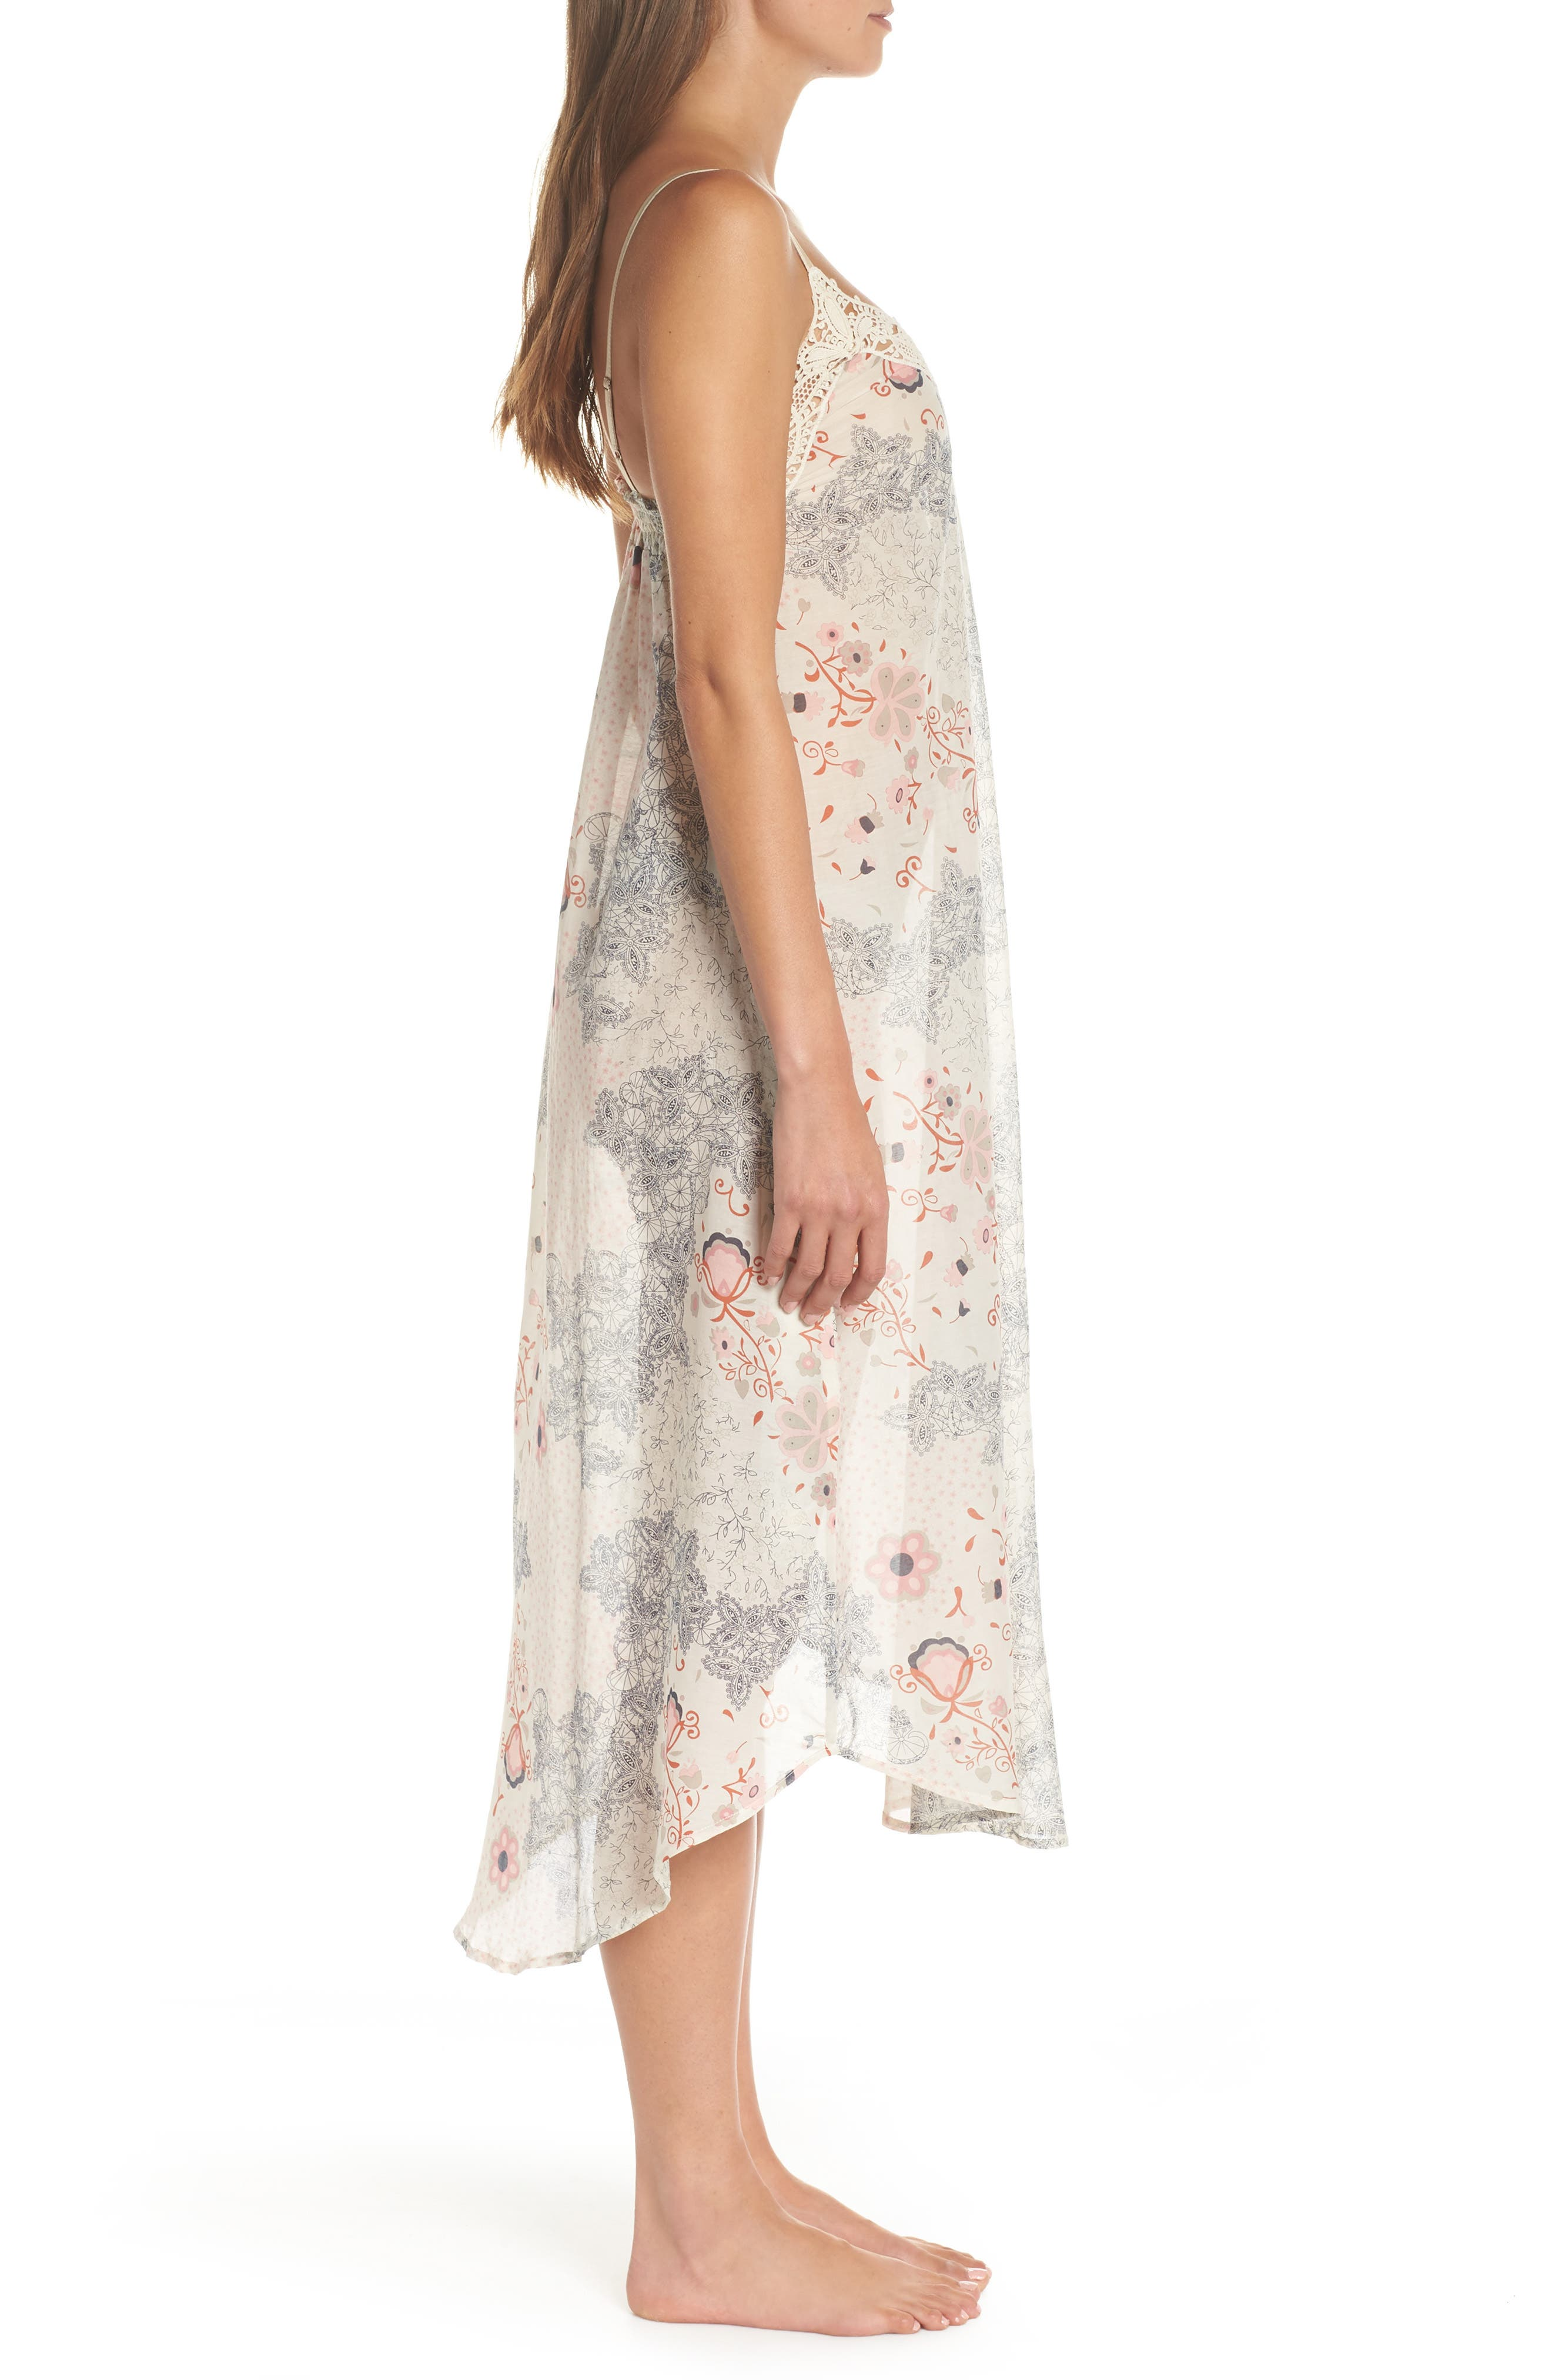 PAPINELLE, Arabella Nightgown, Alternate thumbnail 3, color, PINK MULTI